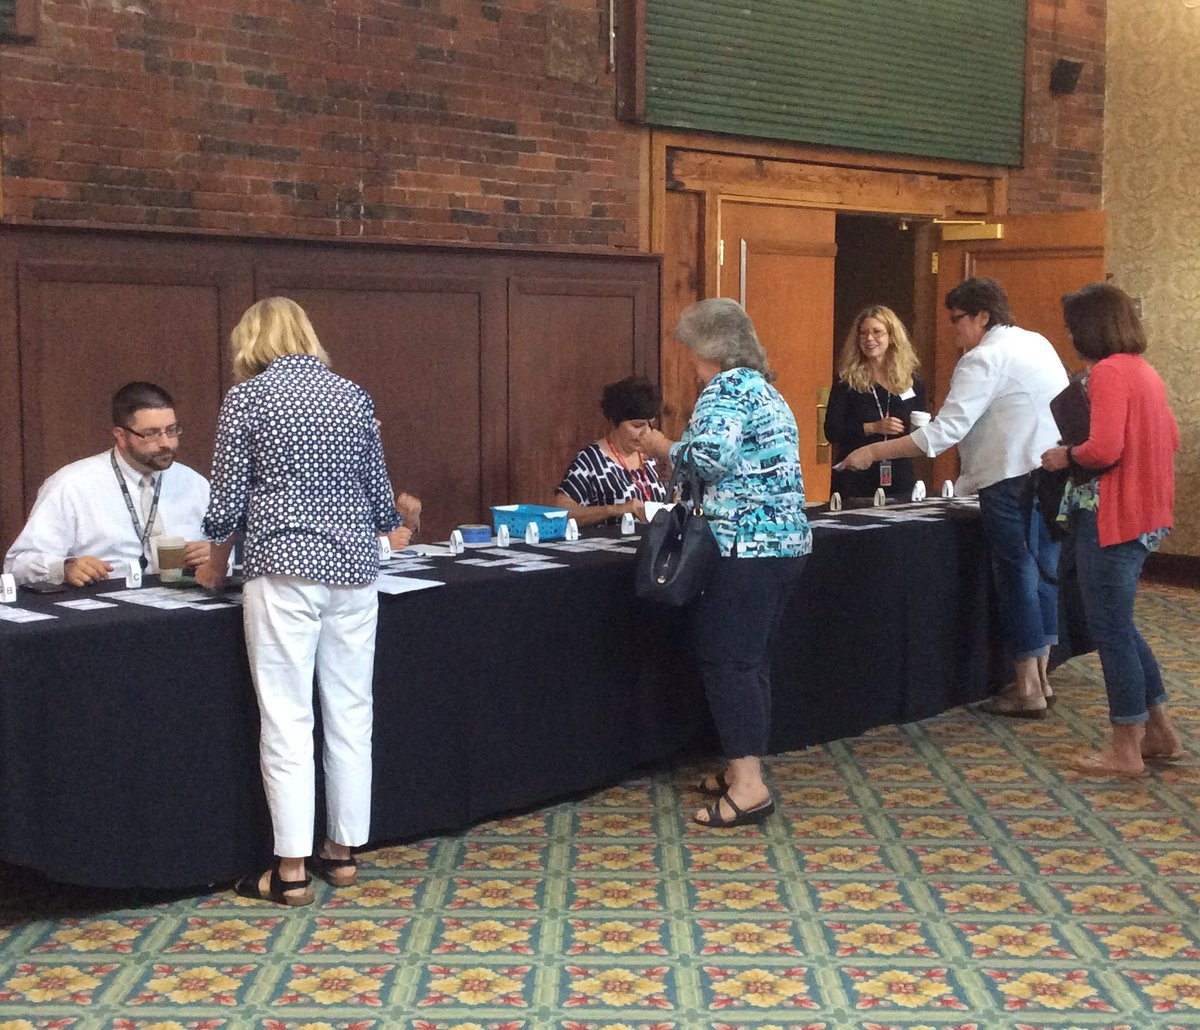 Registration for #apsignite2016 @MannionMegan and @rbfloccari #soorganized https://t.co/Ny0JKgbl6m